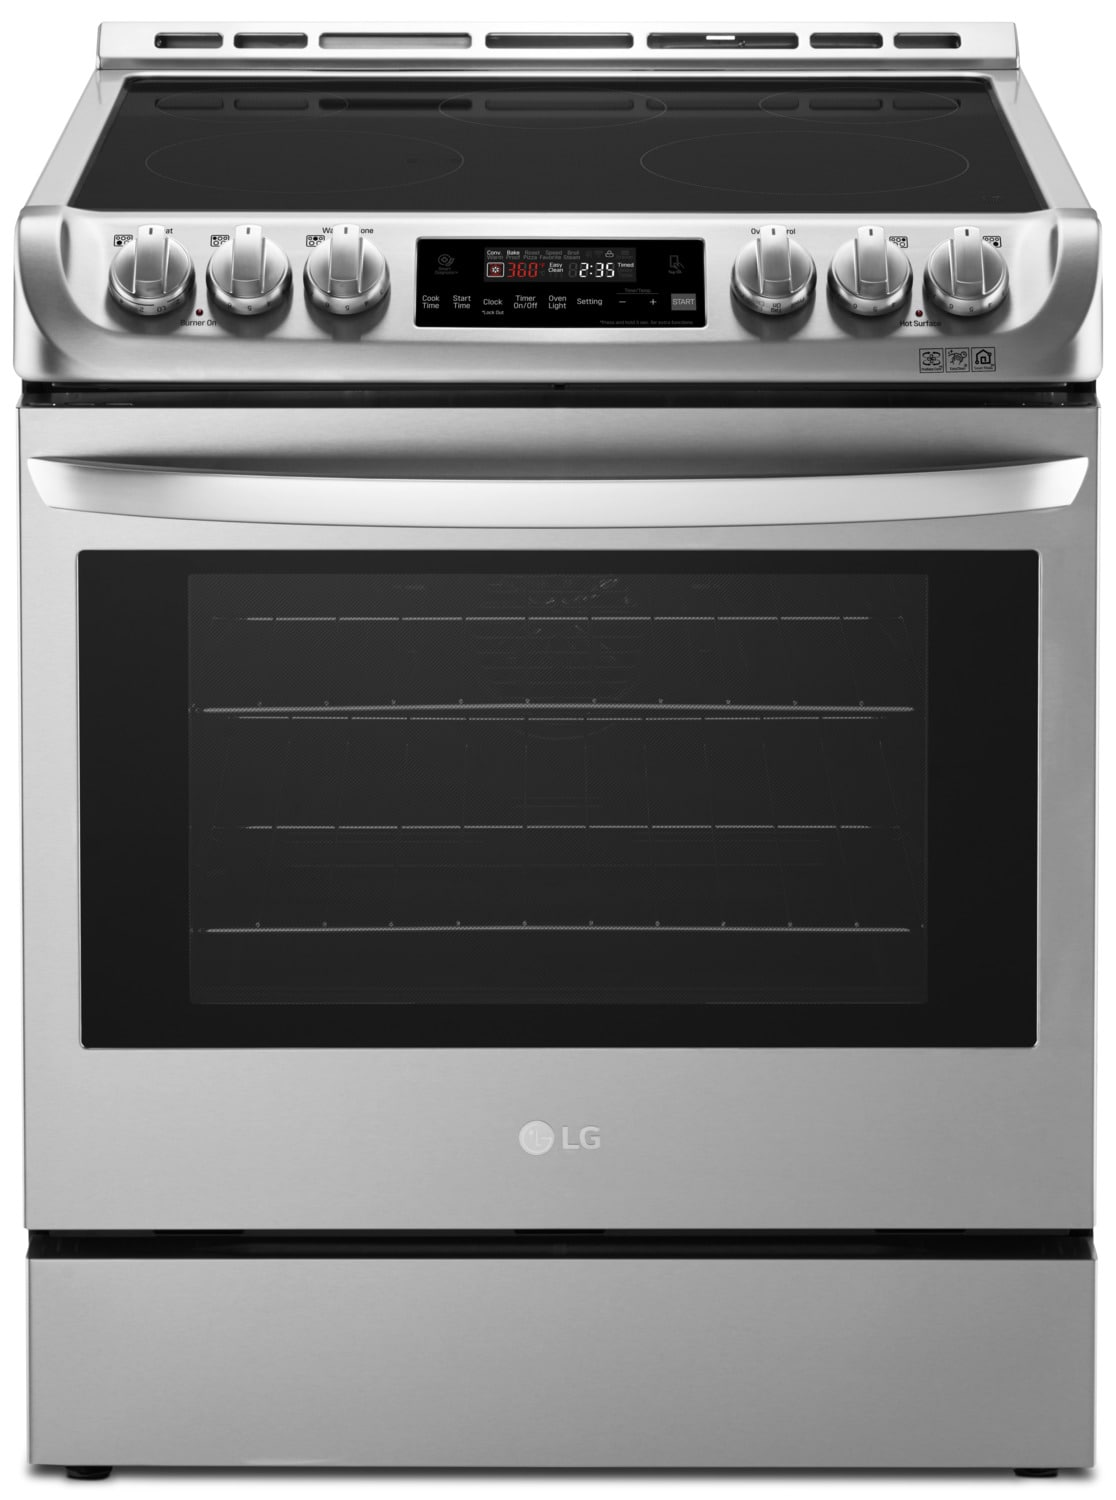 LG 6.3 Cu. Ft. Electric Slide-In Range with ProBake Convection™ – LSE4611ST